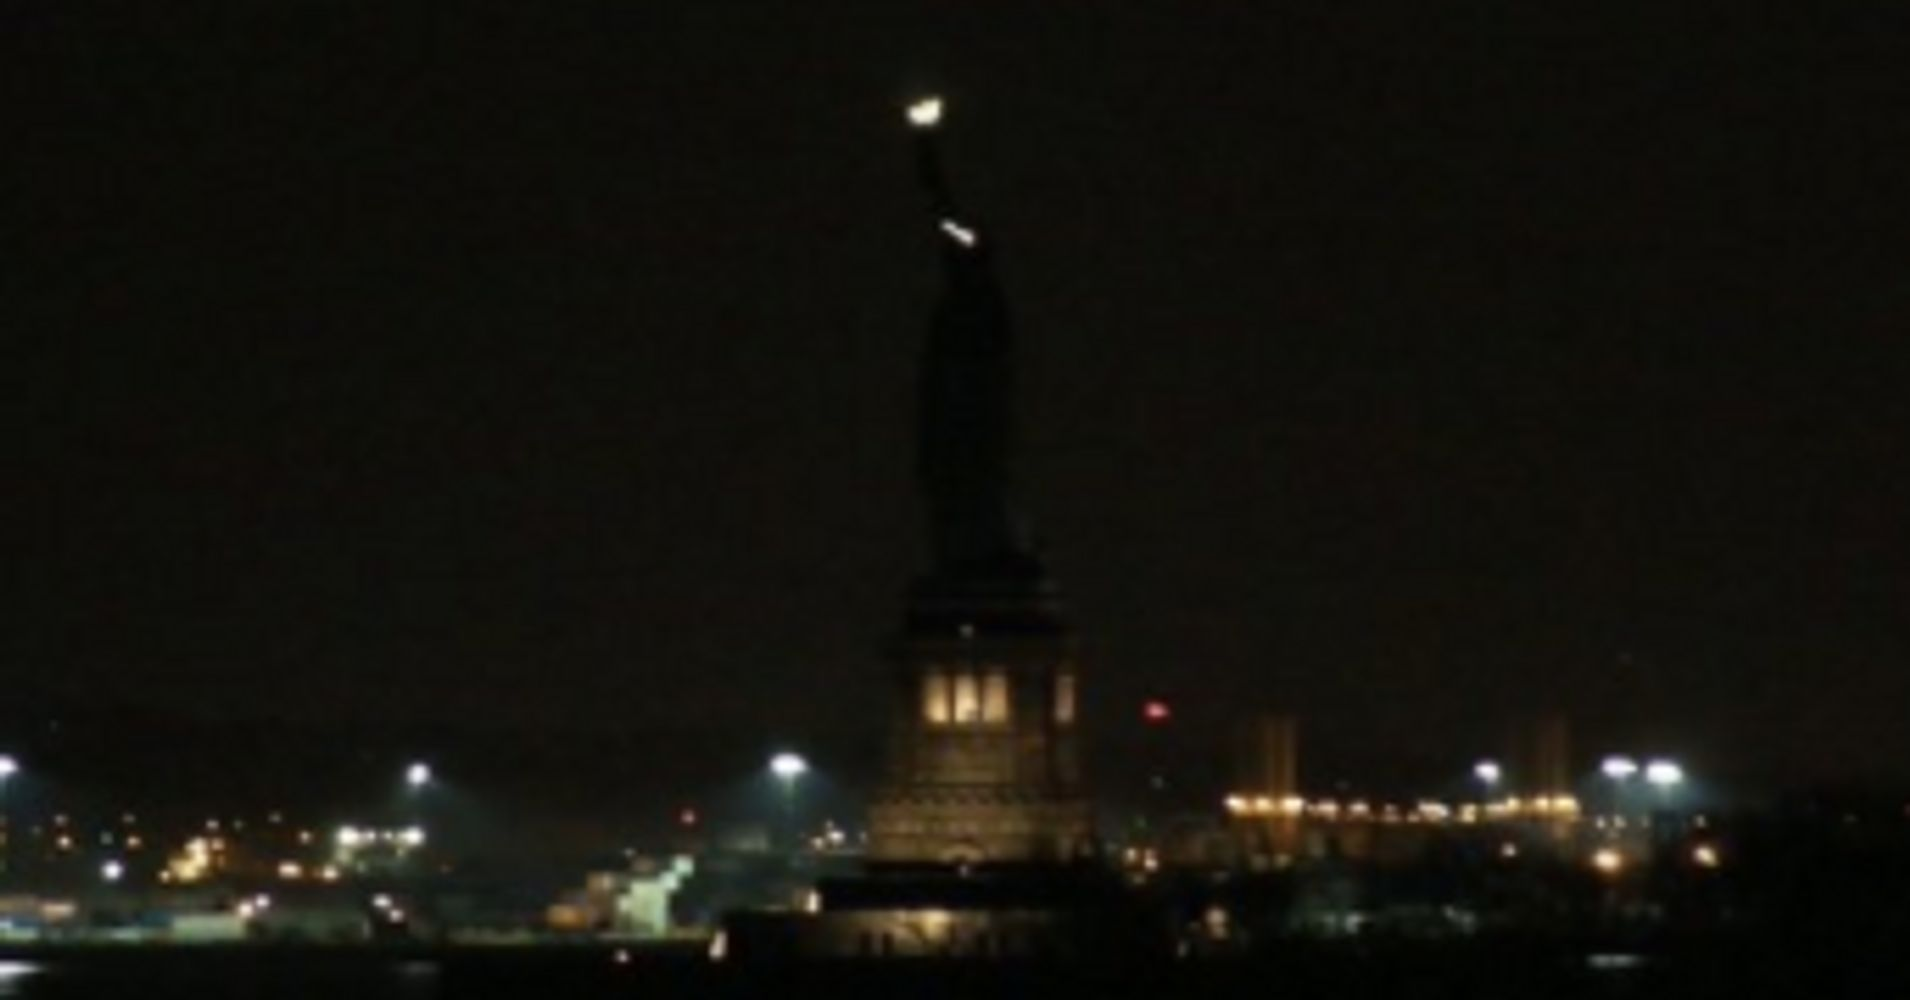 Lights go out at the statue of liberty huffpost biocorpaavc